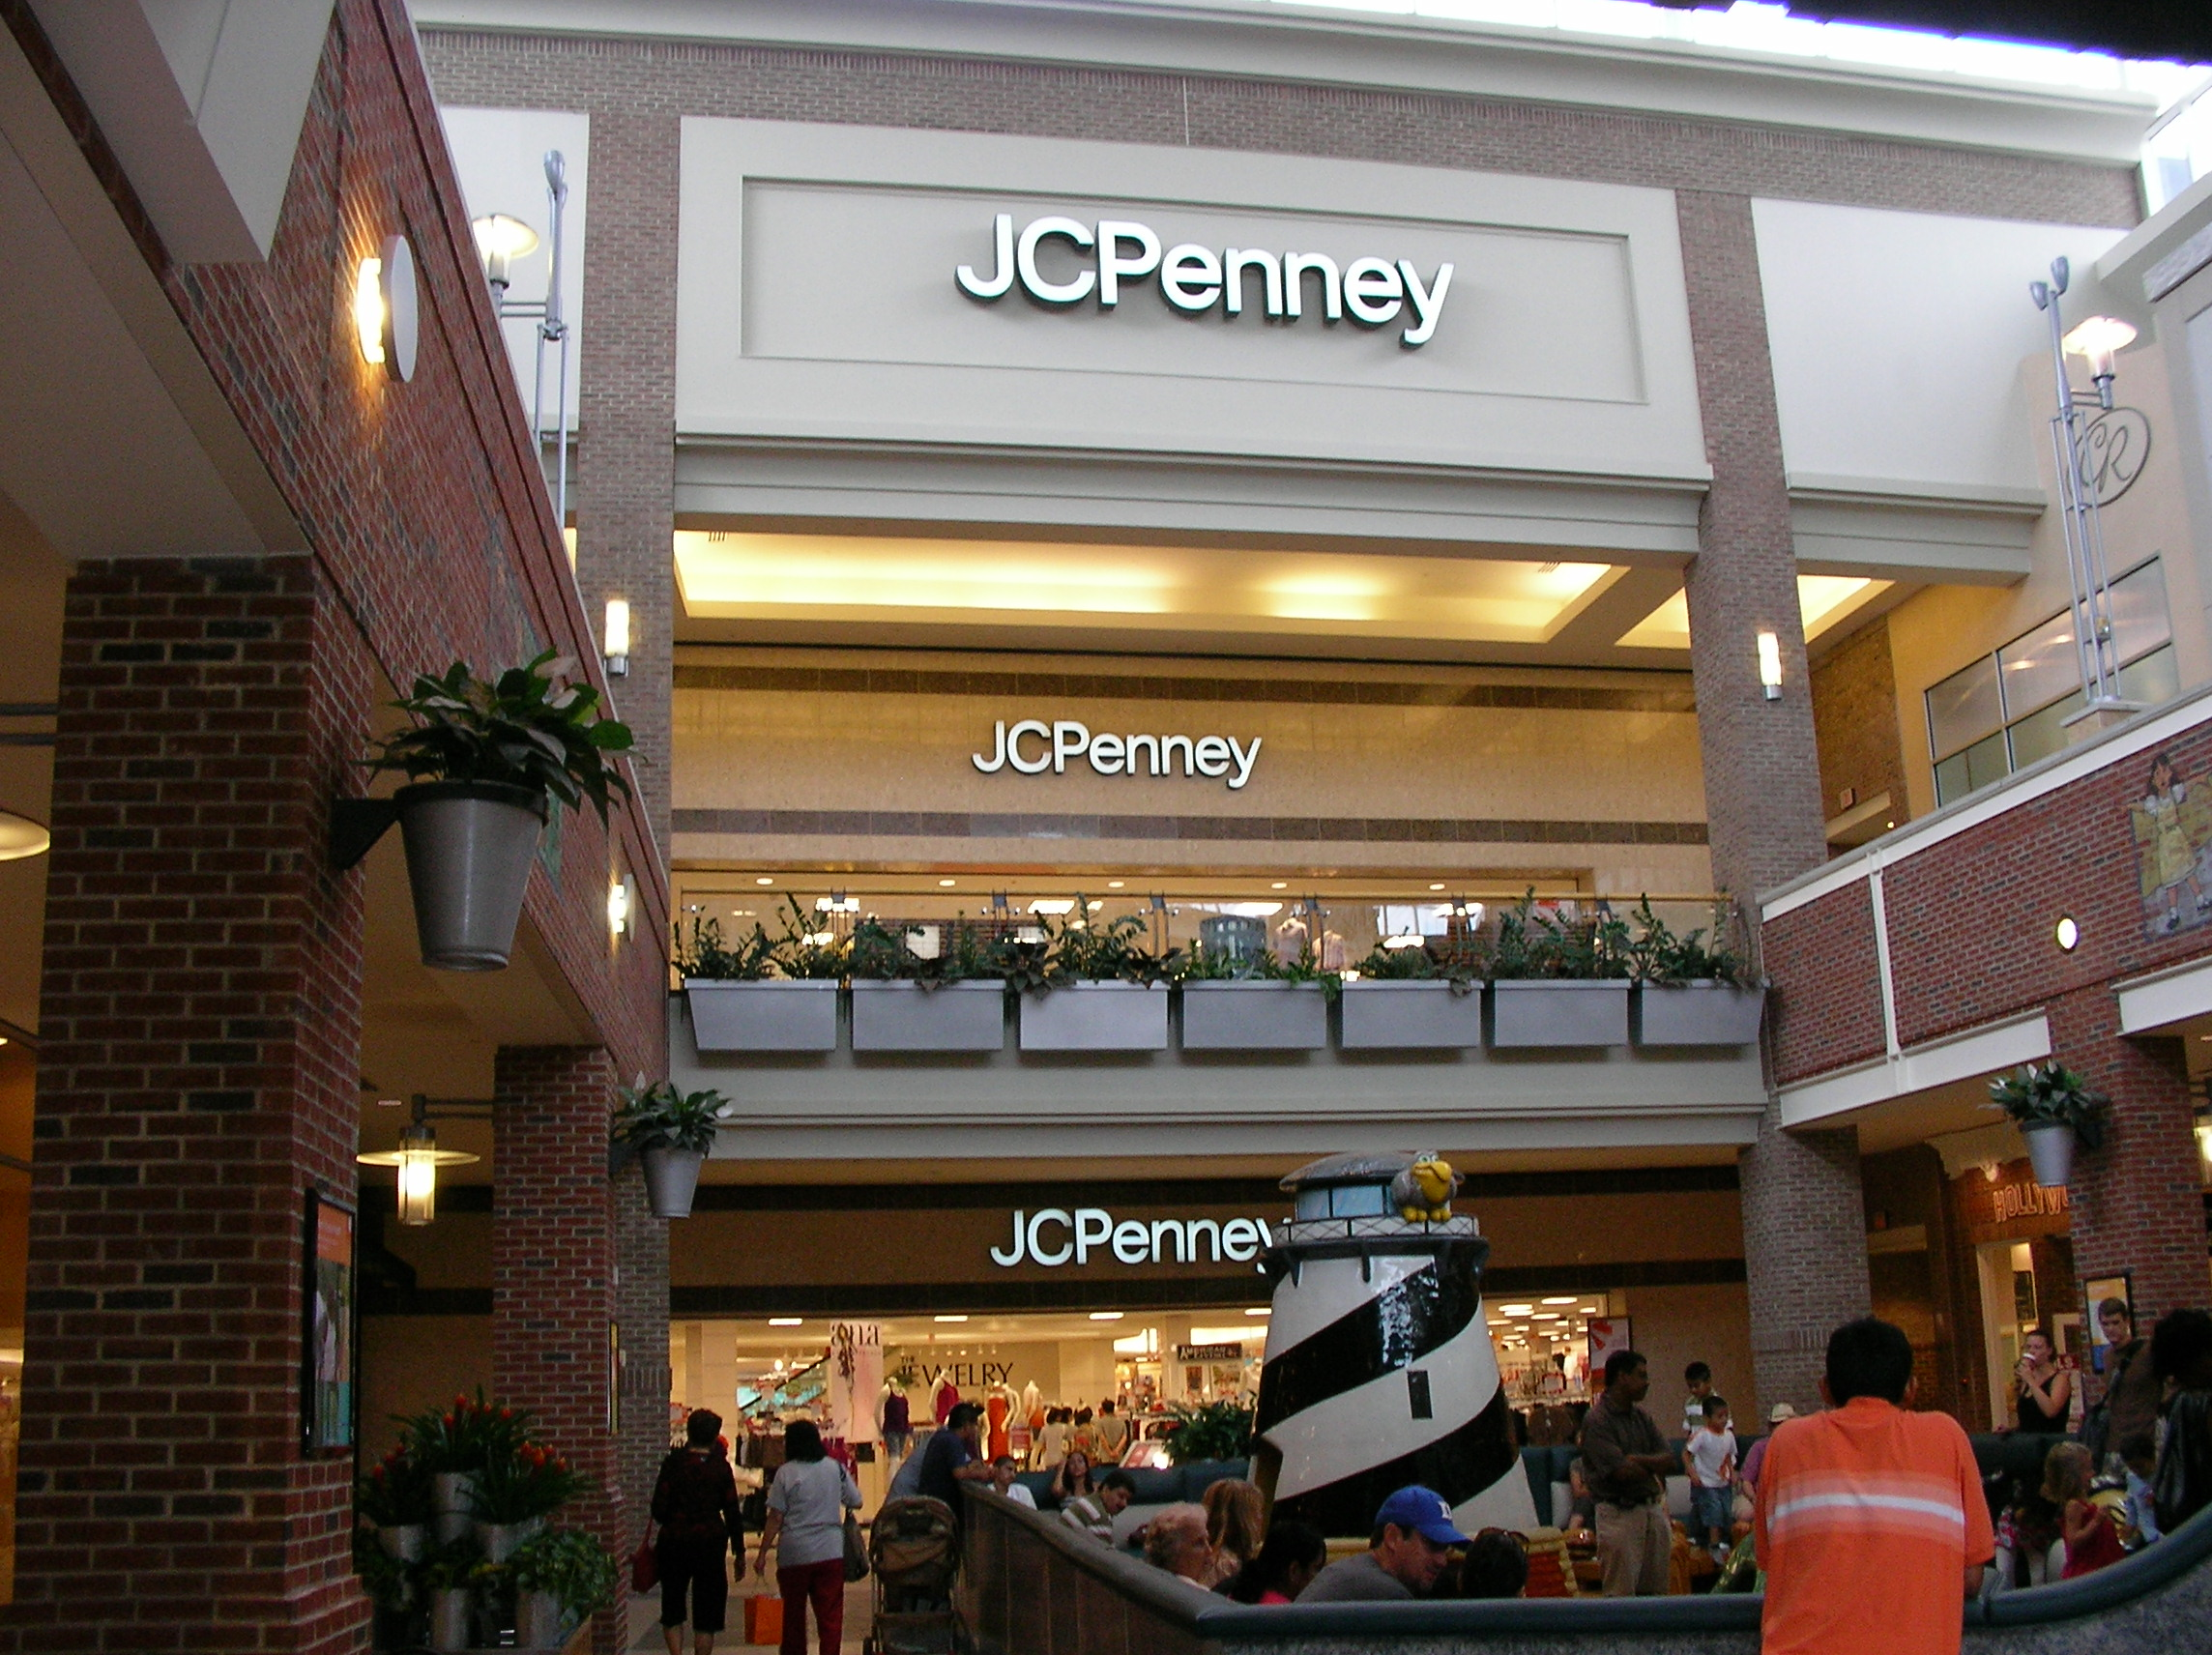 jcpenney vs macys Watch video  with such a low share price, jim cramer takes a look at the retail environment to see if jc penney could be an attractive buy.